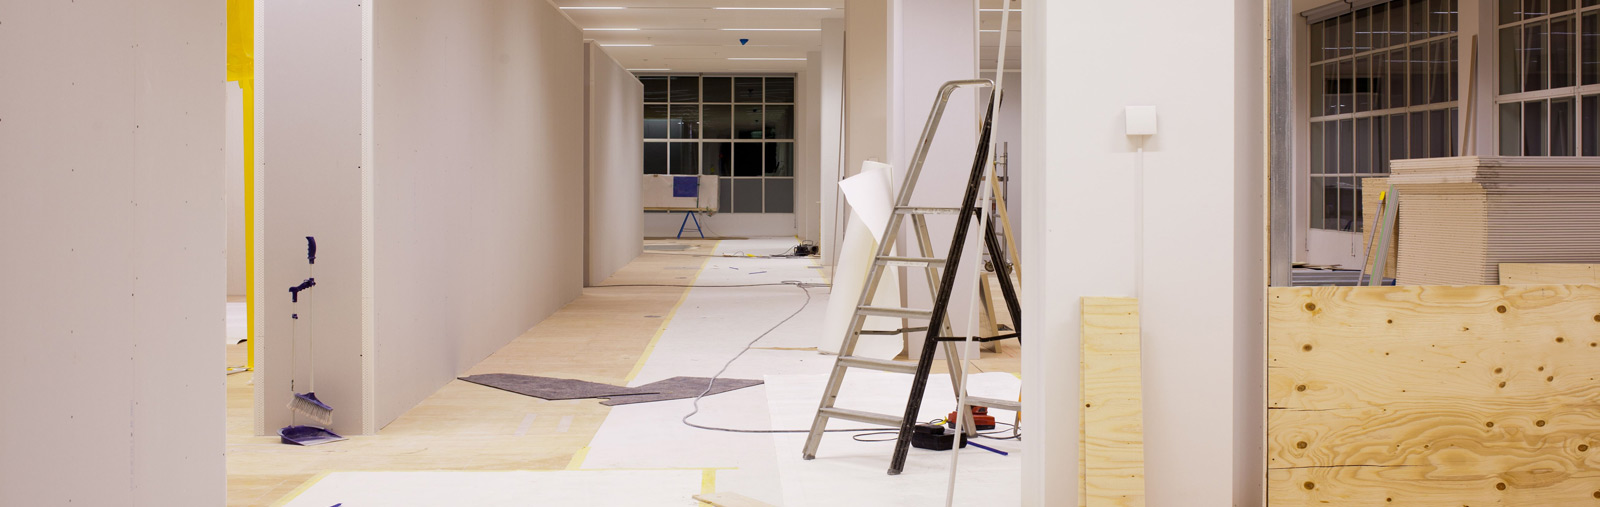 Construction-Cleaning-Slider-3